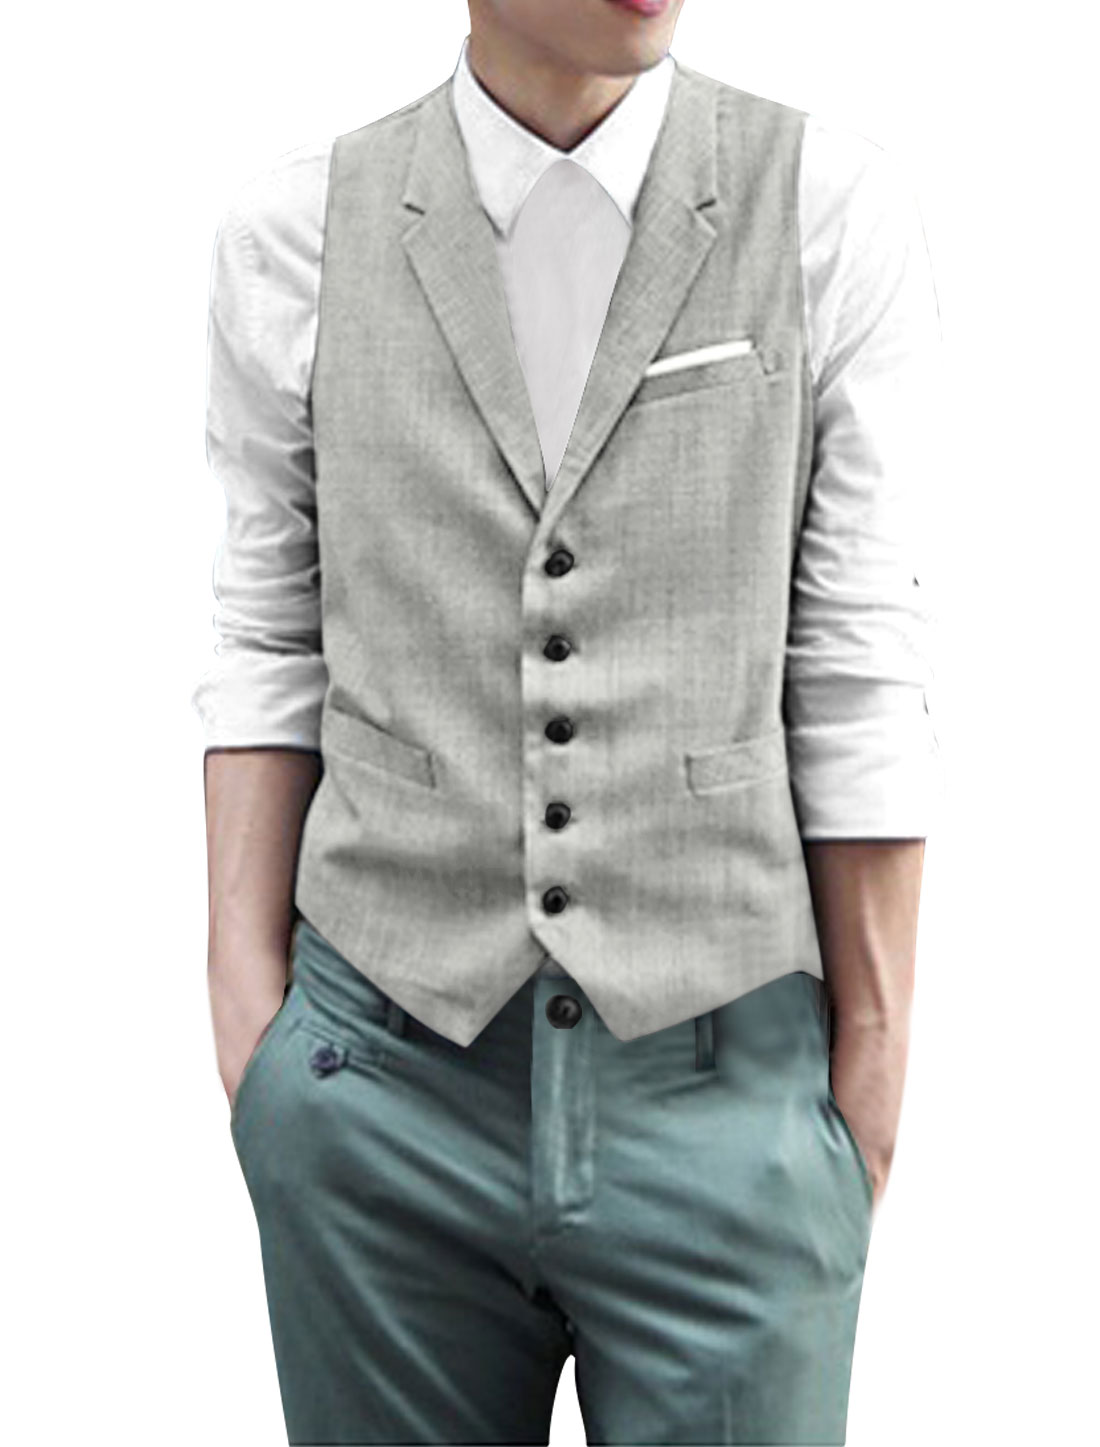 Men Chic Adjustable Buckle Back Plaids Pattern Lining Vest Gray L